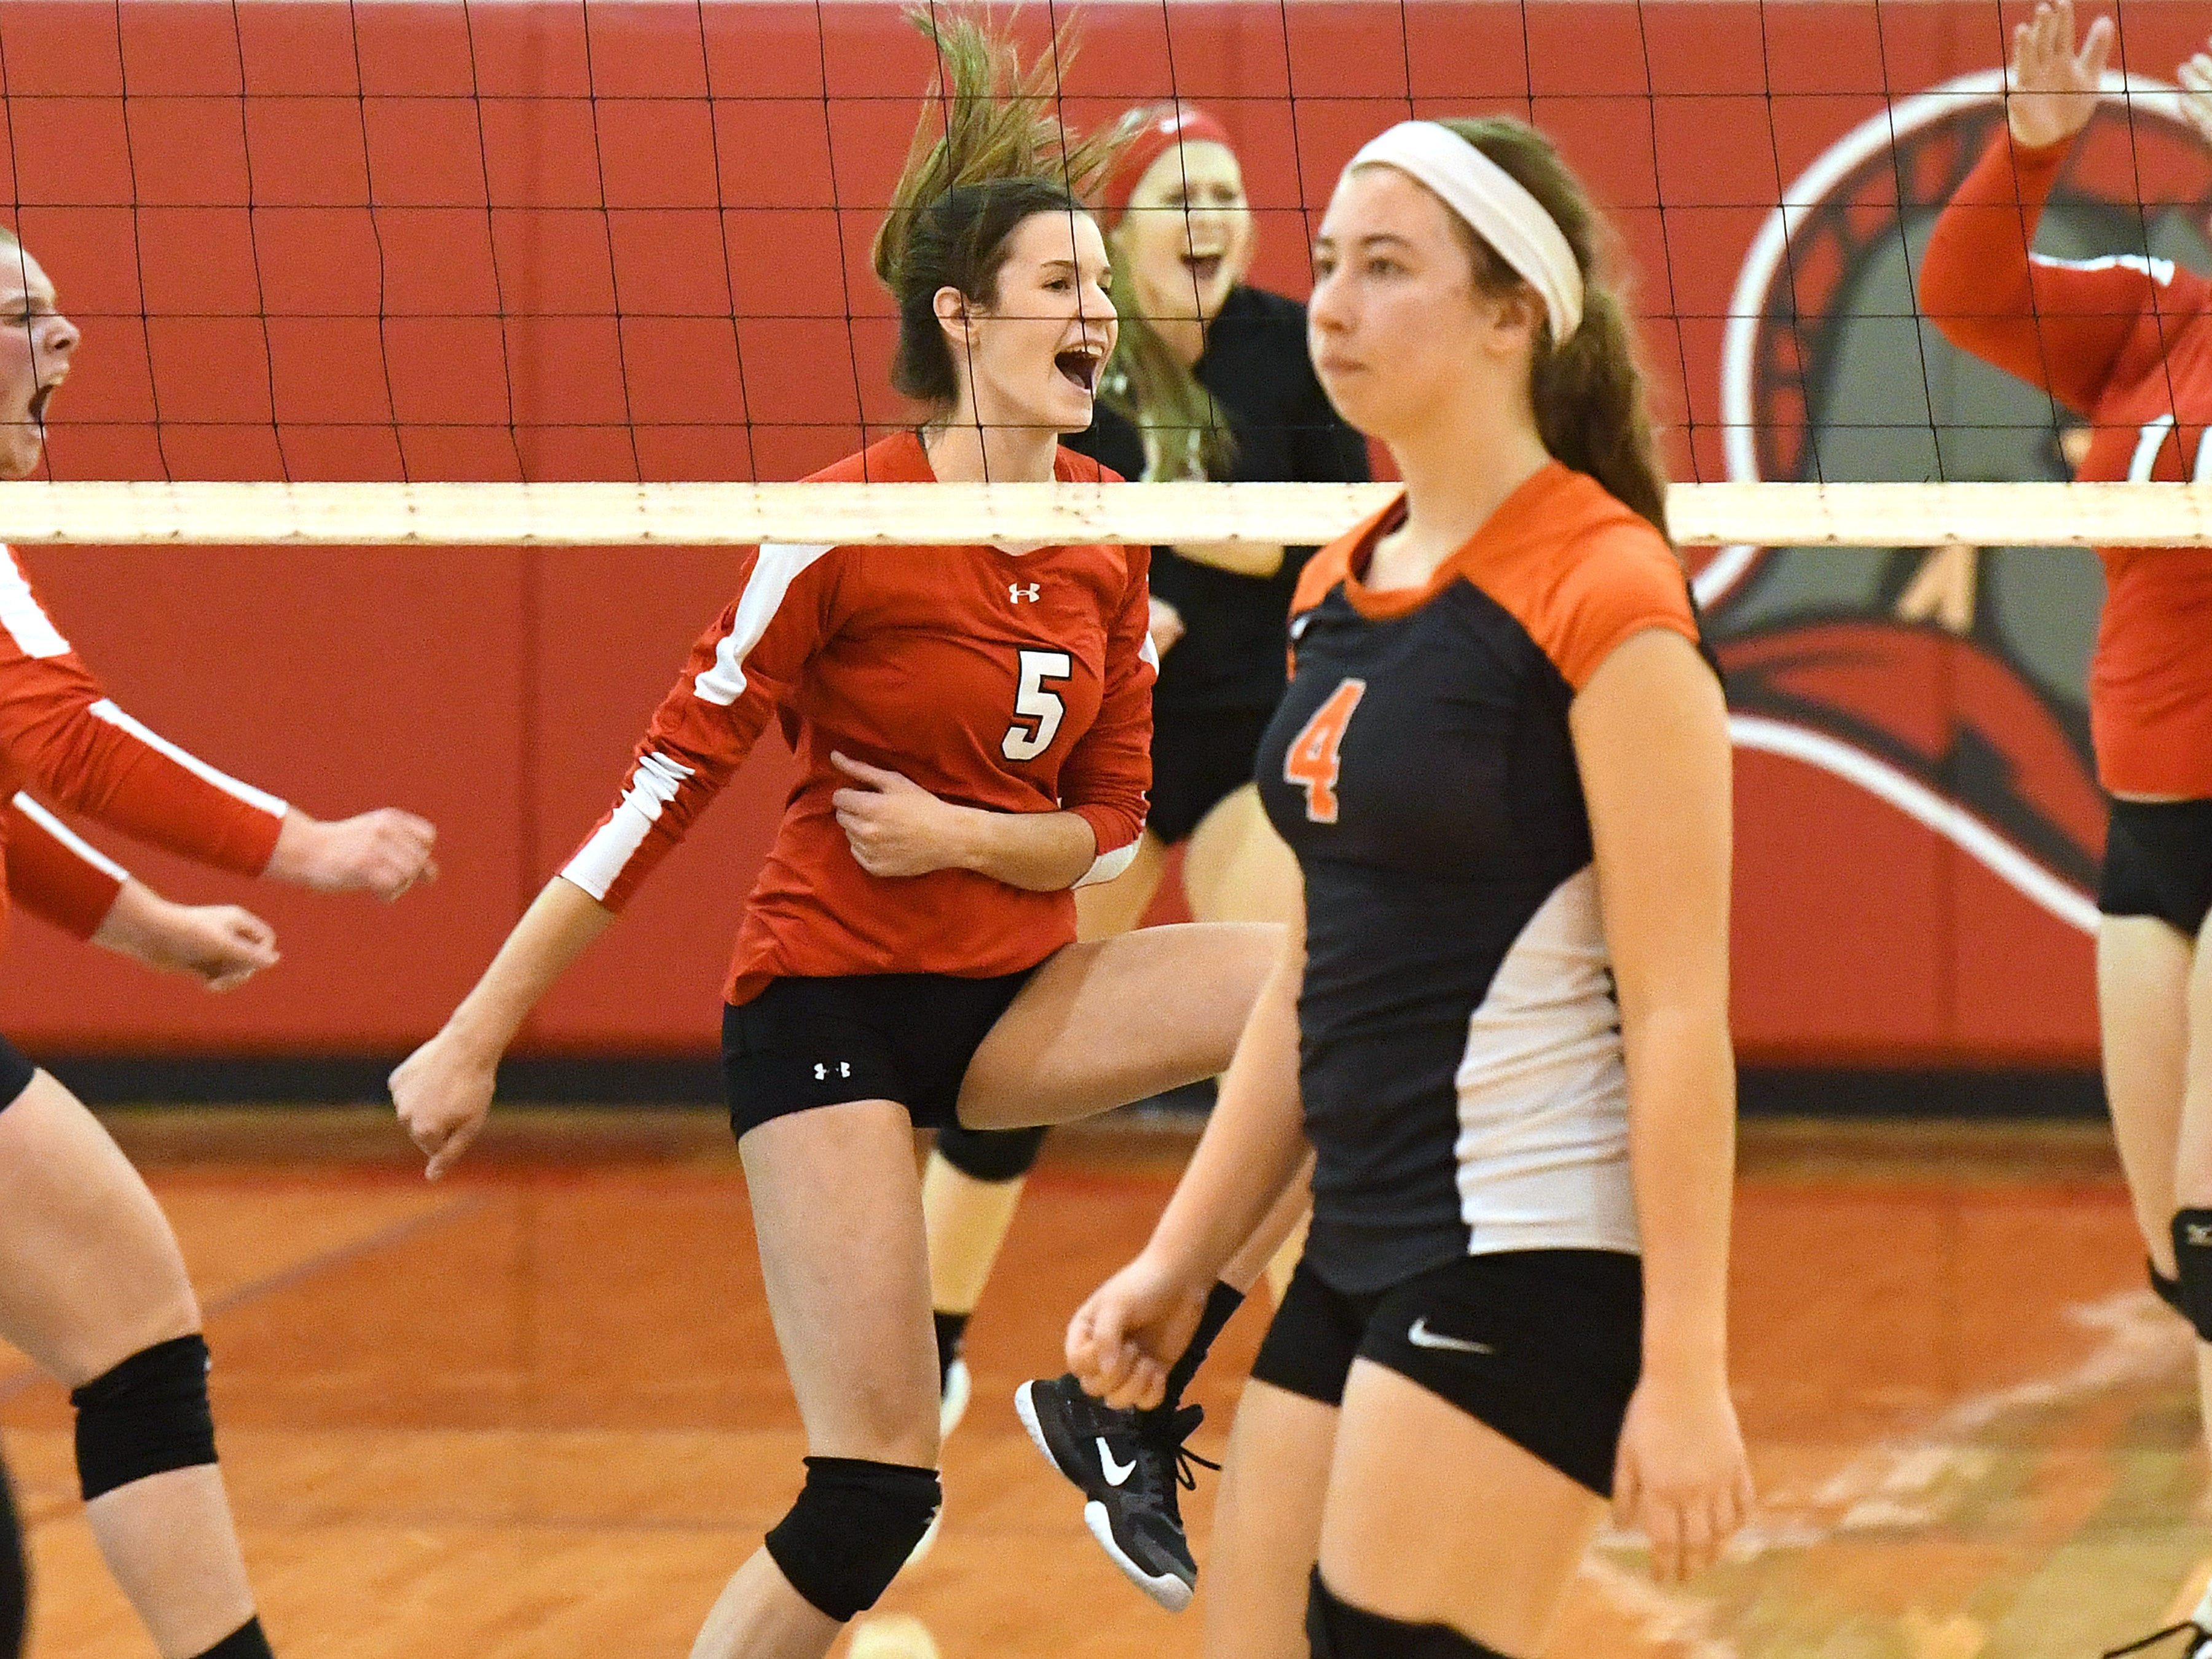 Riverheads' Abbey Eavers celebrates scoring a point during the Region 1B volleyball championship played in Greenville on Wednesday, Nov. 7, 2018.